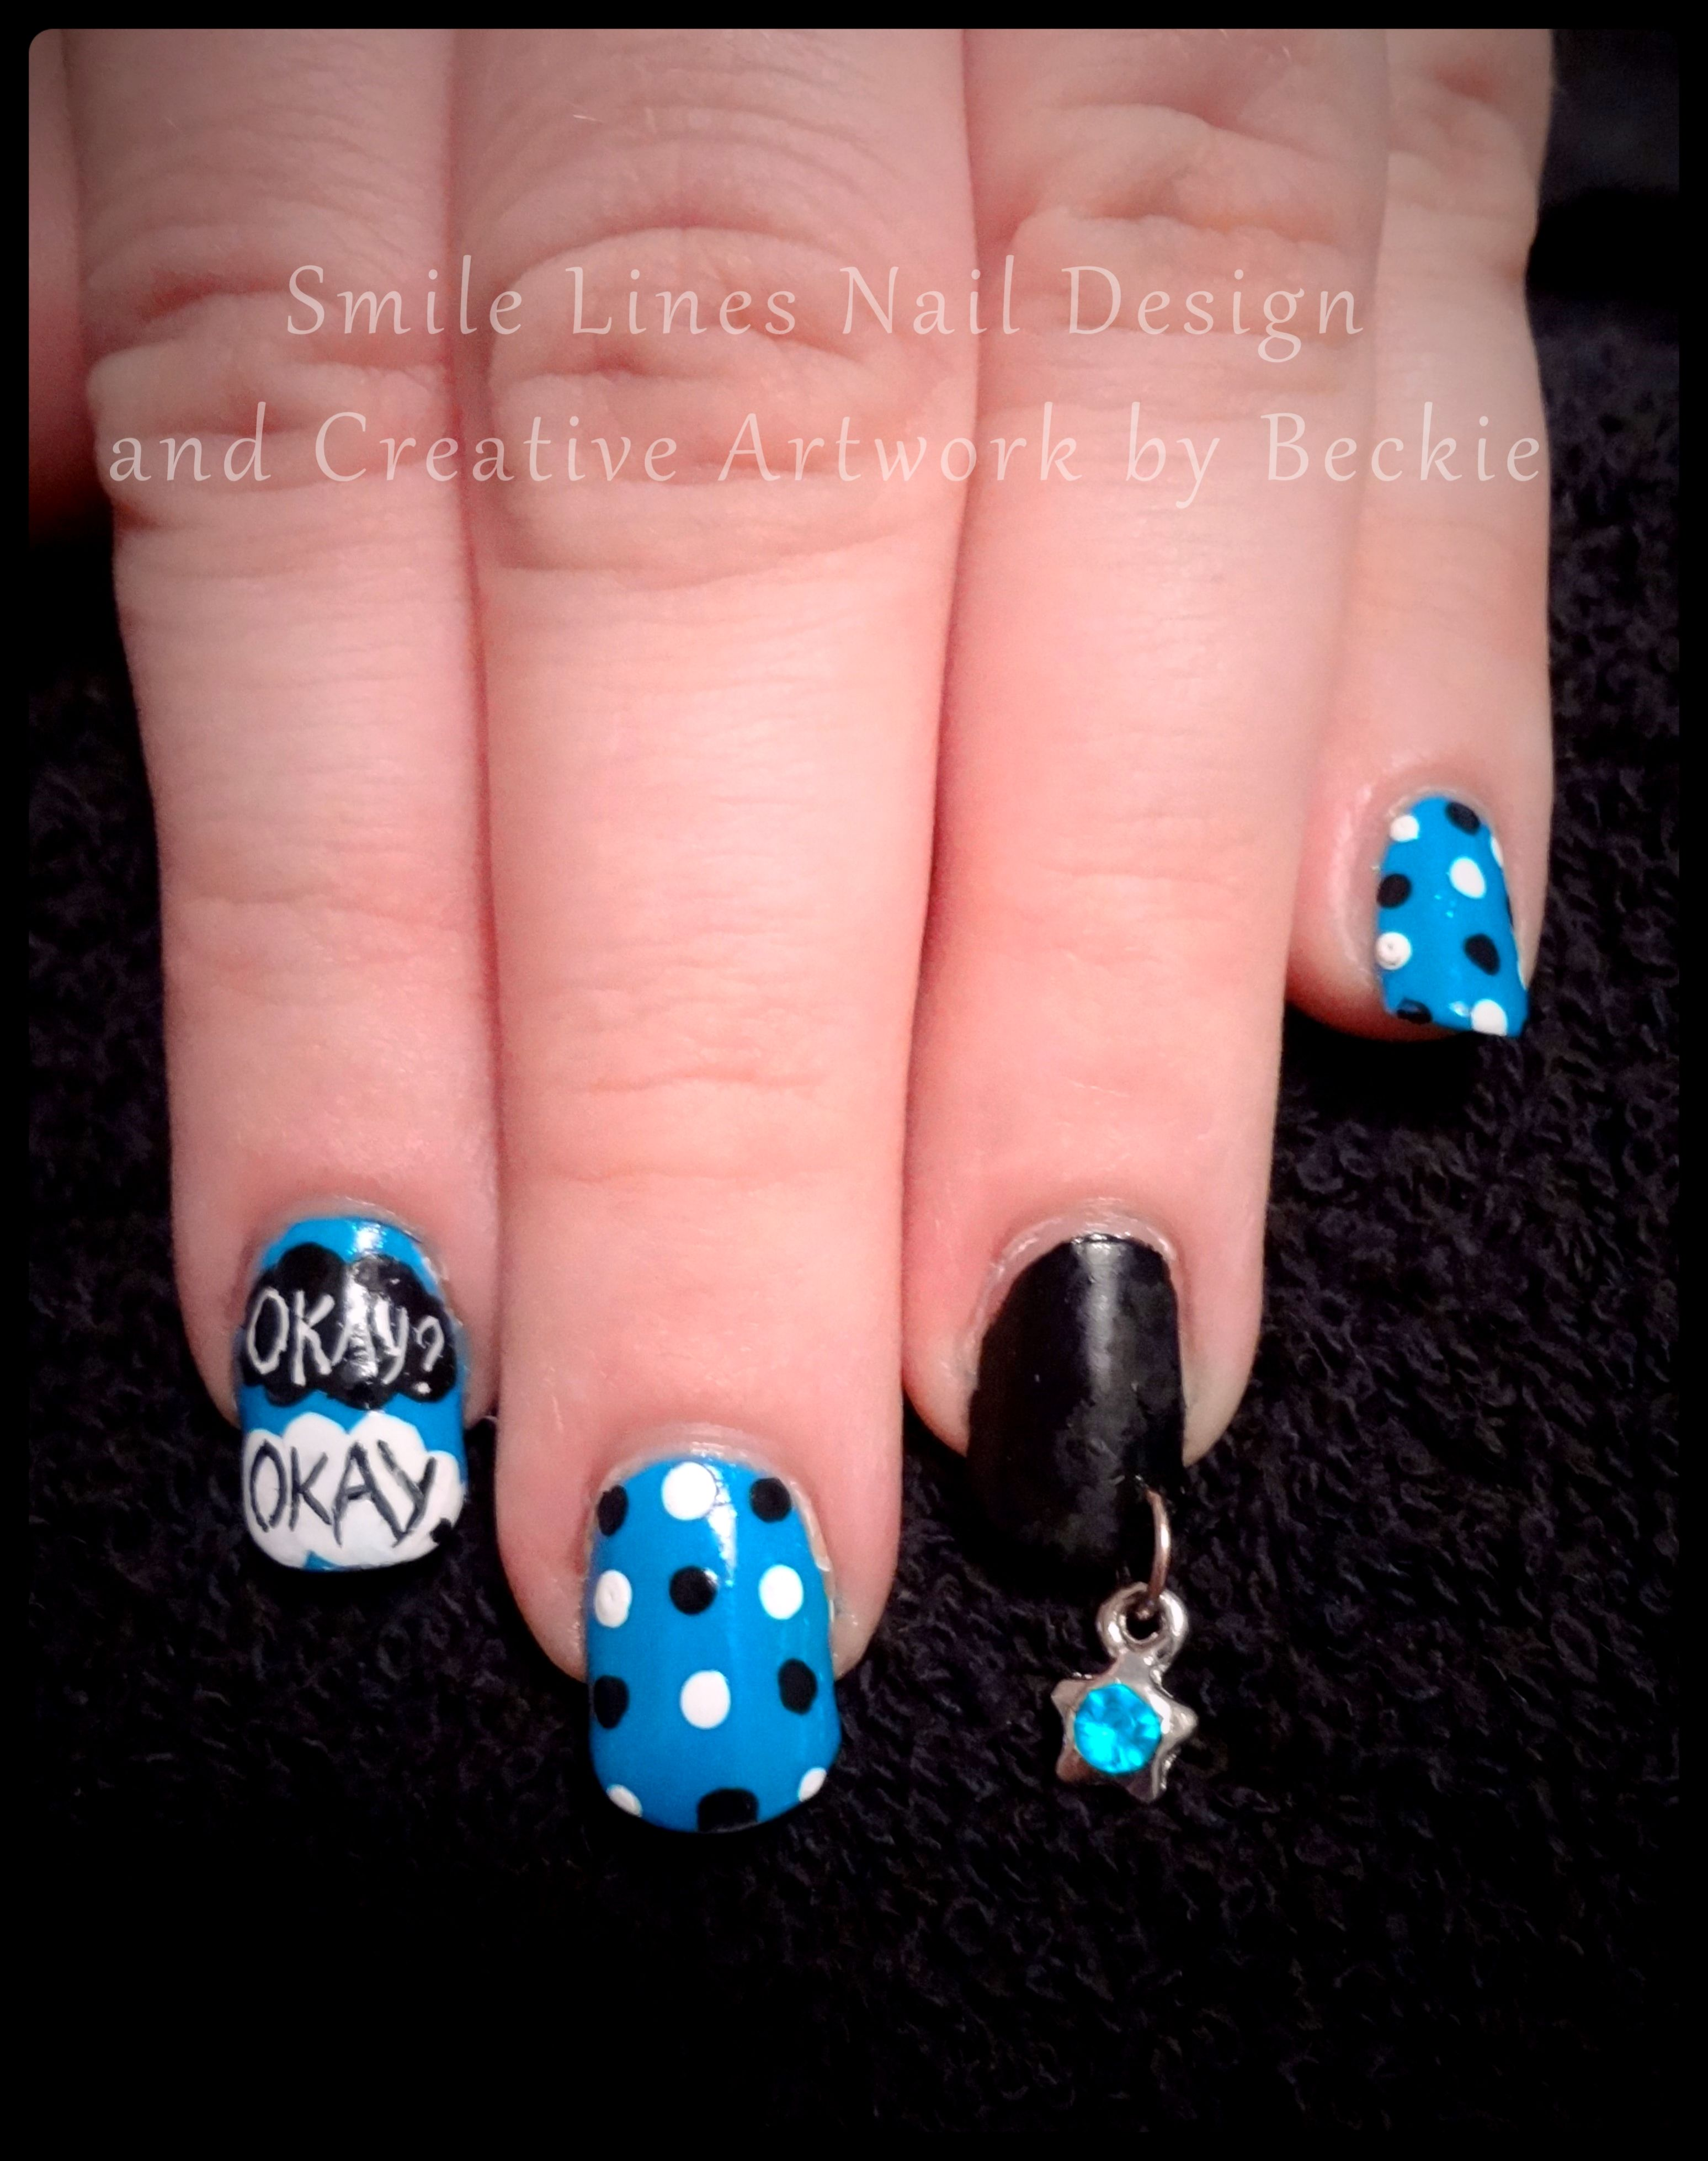 The Fault in Our Stars\' inspired nail art with cute star charm ...